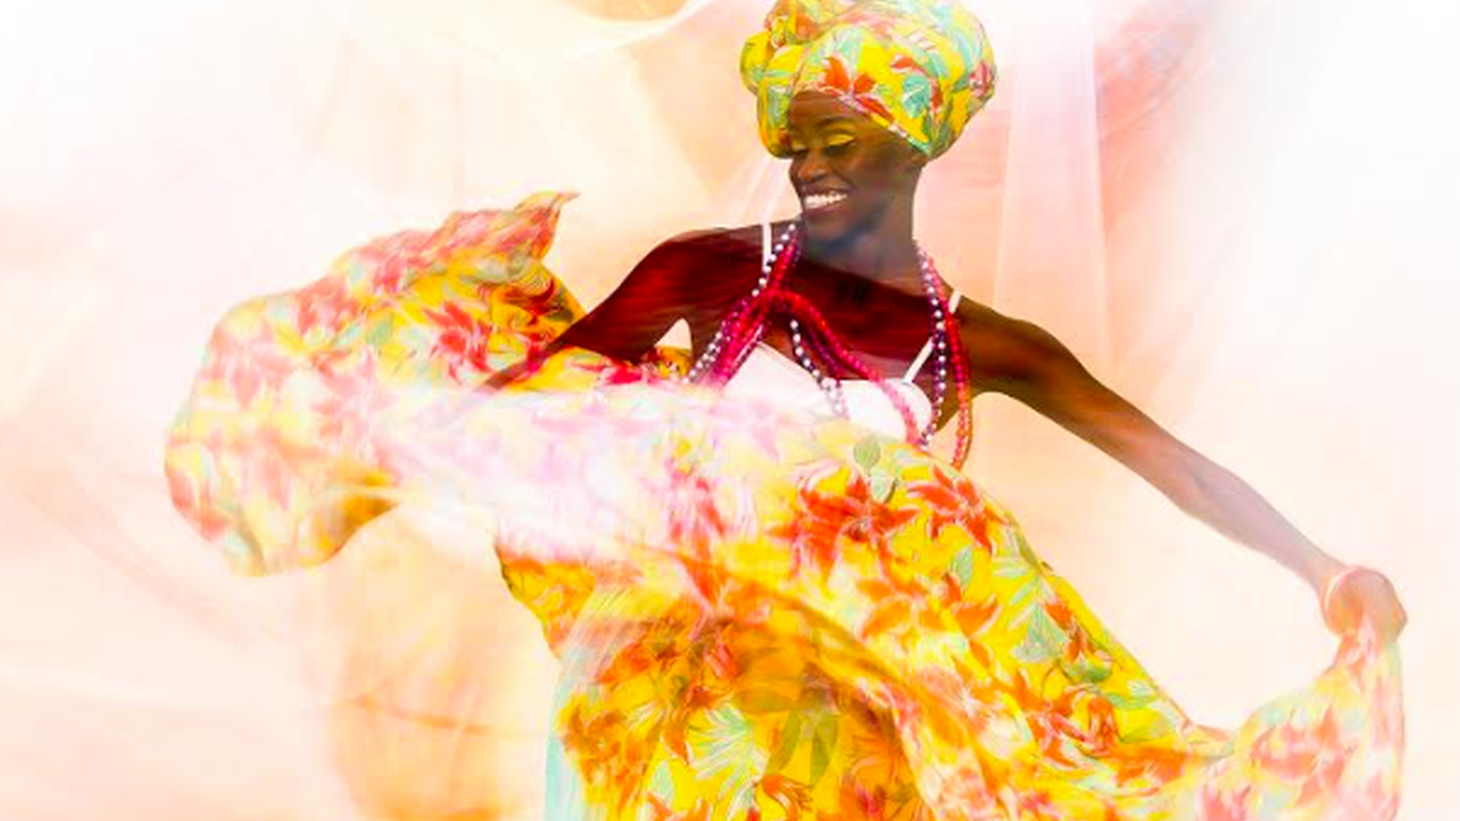 Viver Brasil is a world-class dance company specializing in Afro-Brazilian dance styles from Bahia. Founder Linda Yudin and choreographer/percussionist Kahlil Cummings drop by Rhythm Planet to talk about the big upcoming show at the Ford Theatre Friday, September 22.